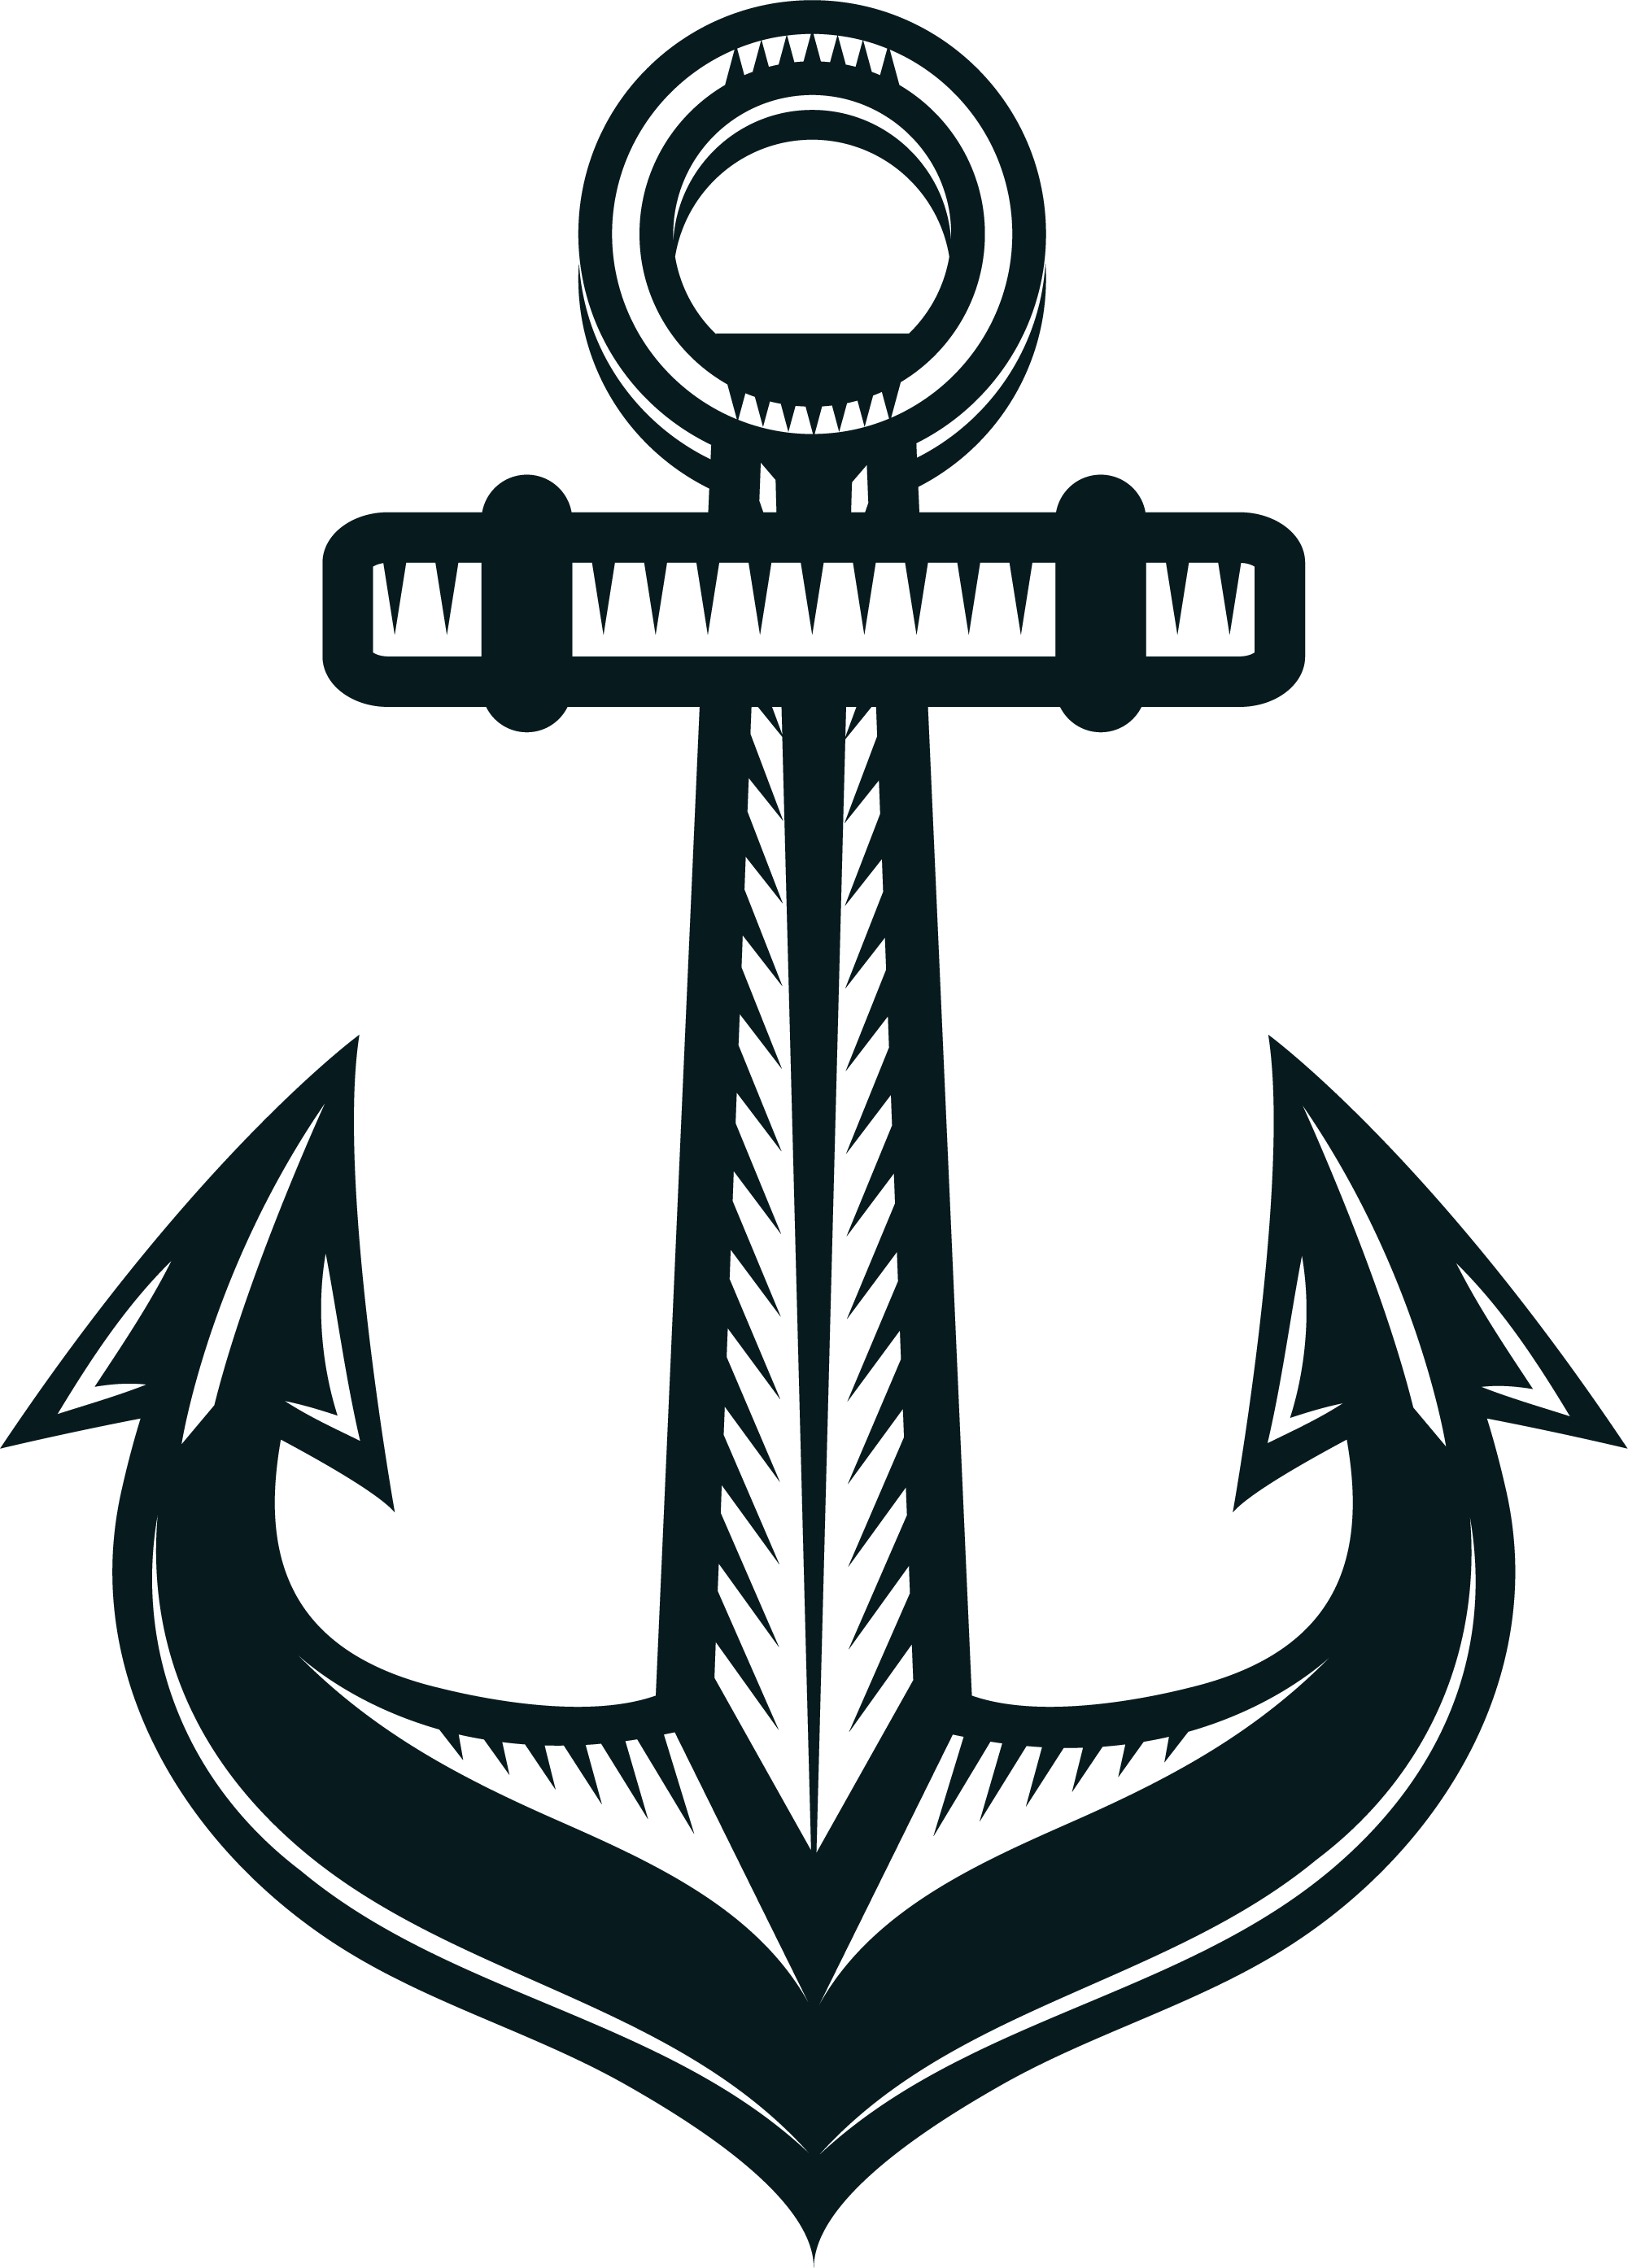 Clipart anchor black and white. Ship watercraft clip art